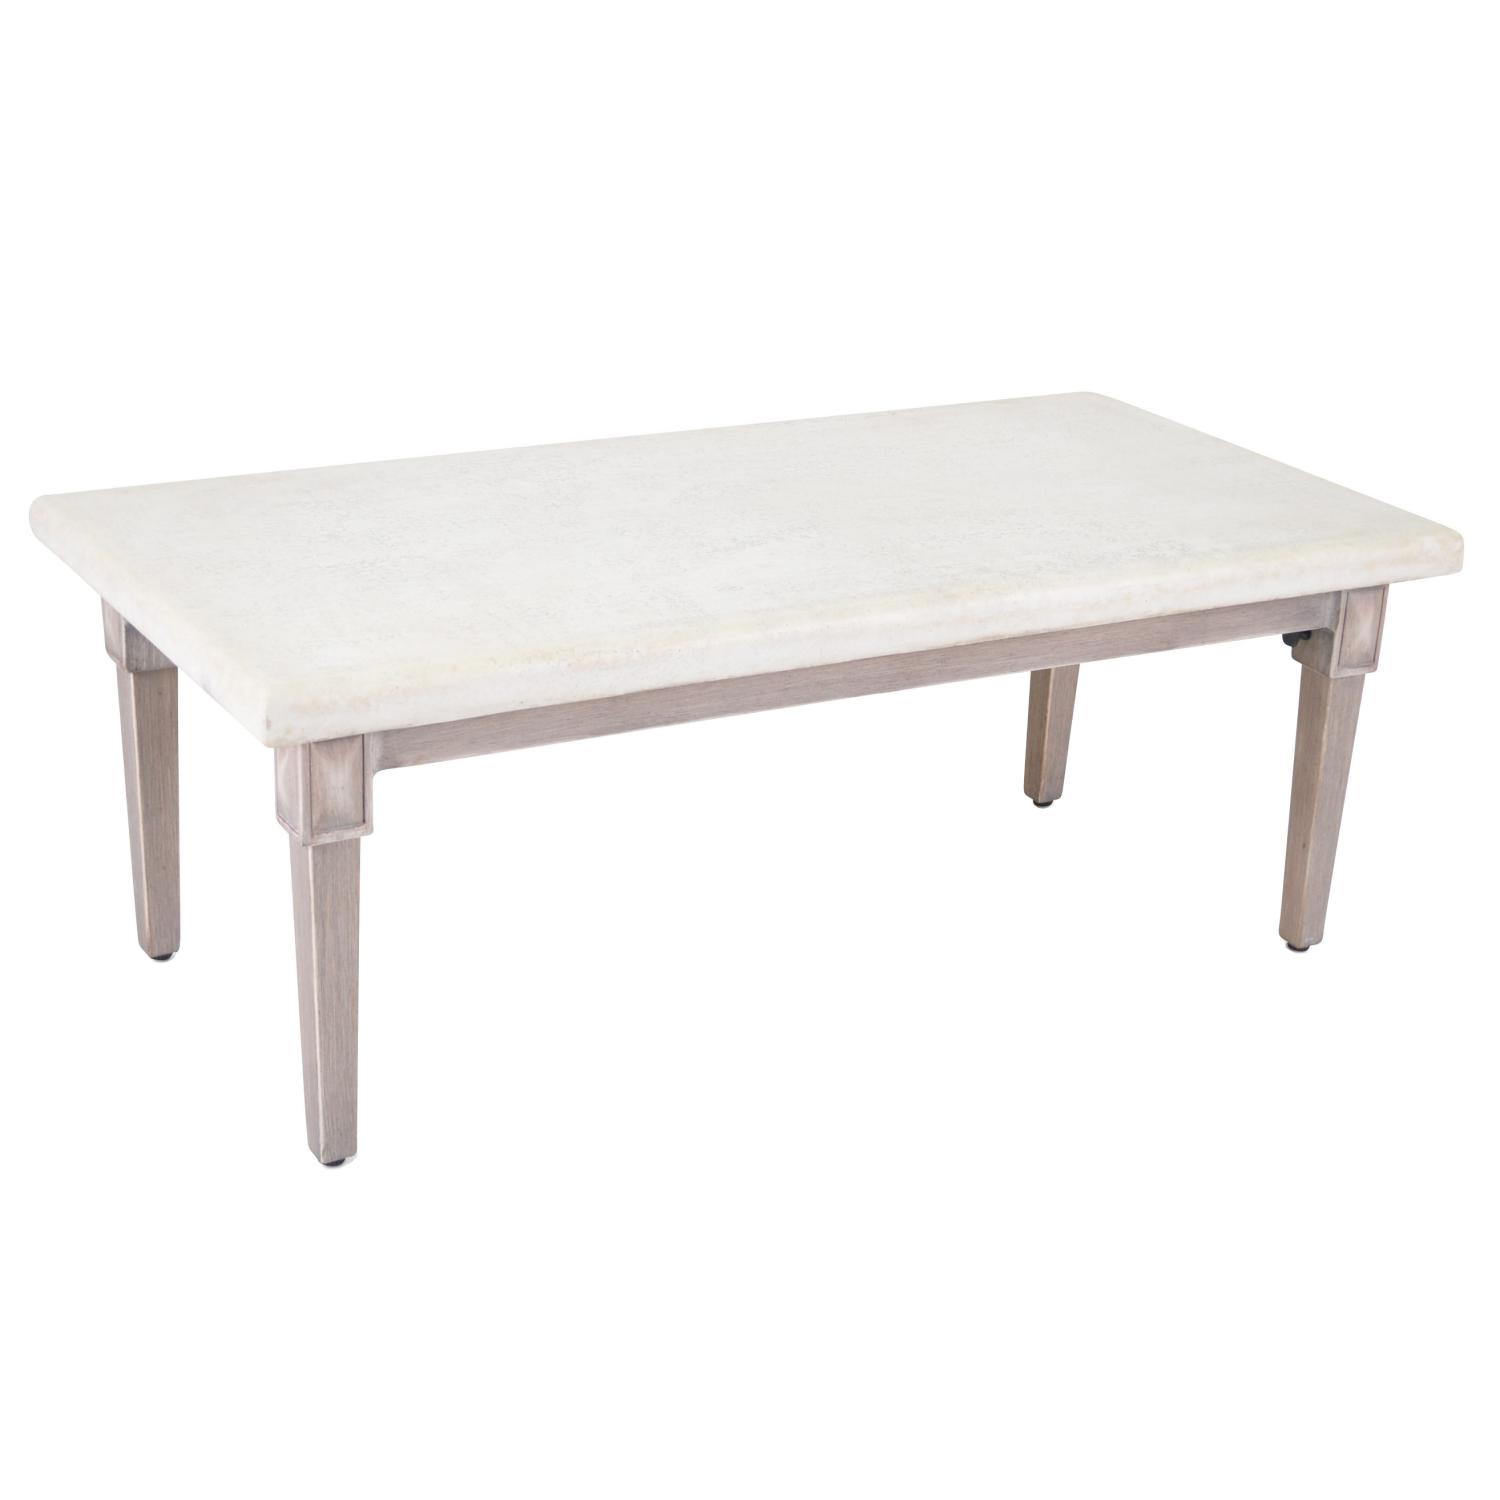 Plank & Hide Pelham Rectangular Cast Aluminum 48 X 24 Inch Patio Coffee Table - 20008-BRL